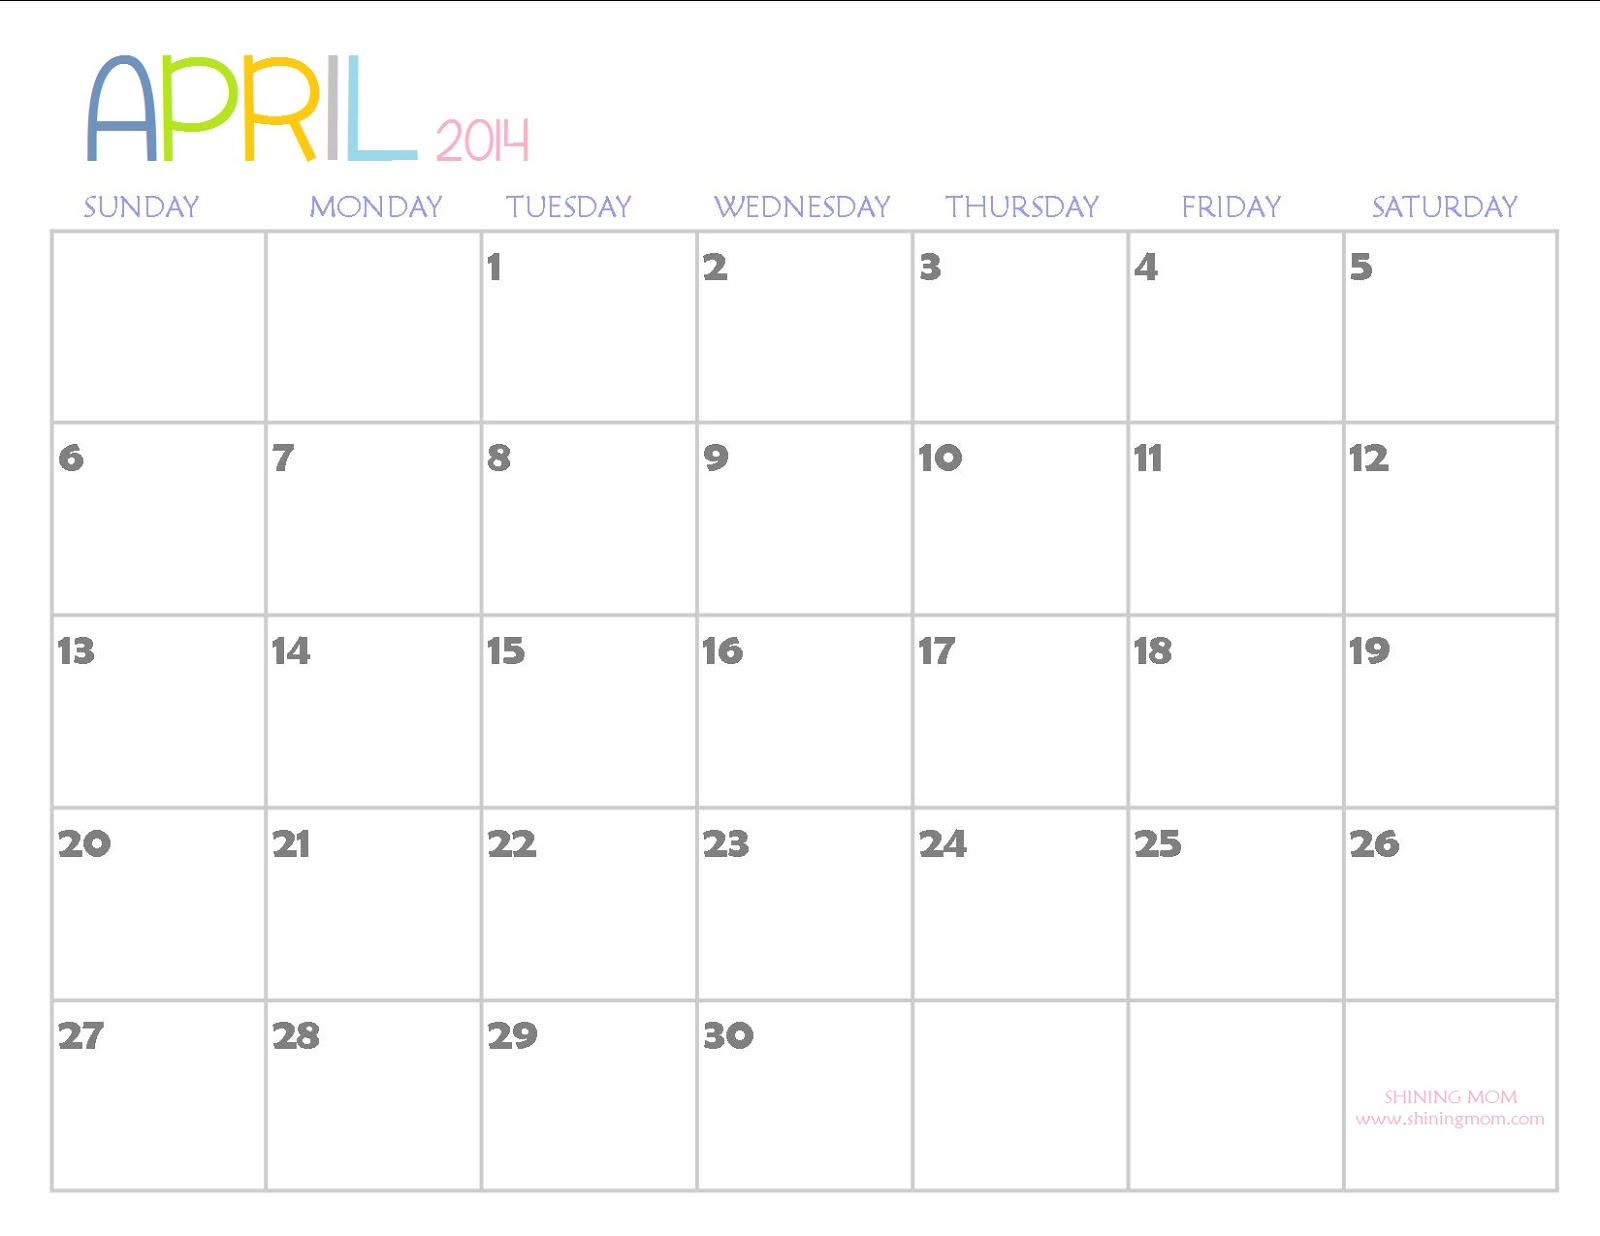 March April May 2014 Calendar April 2014. may 2014